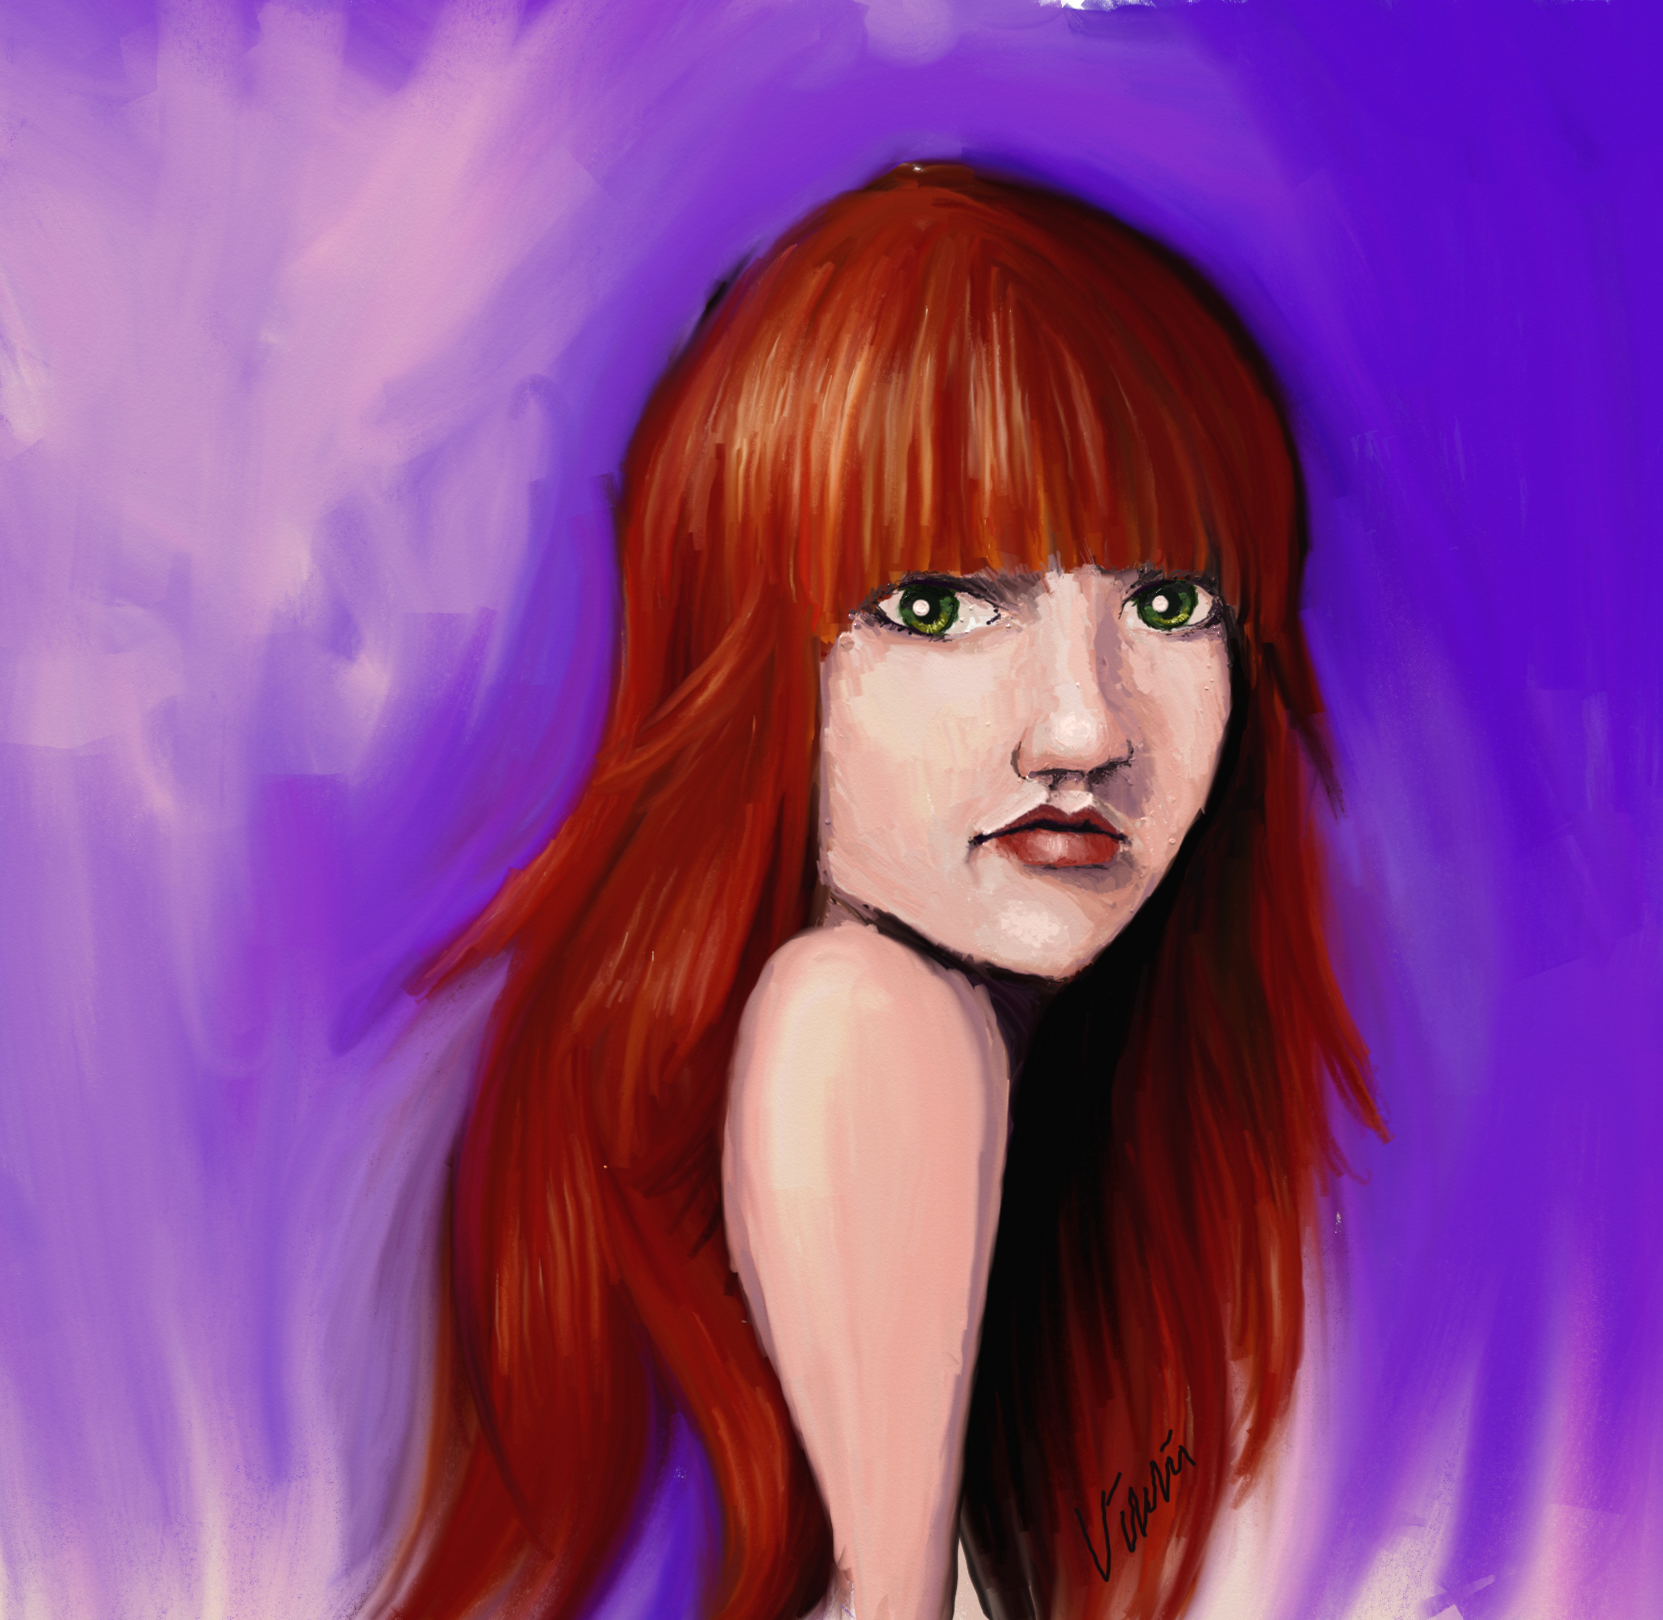 Red Head Girl with Digital Oil